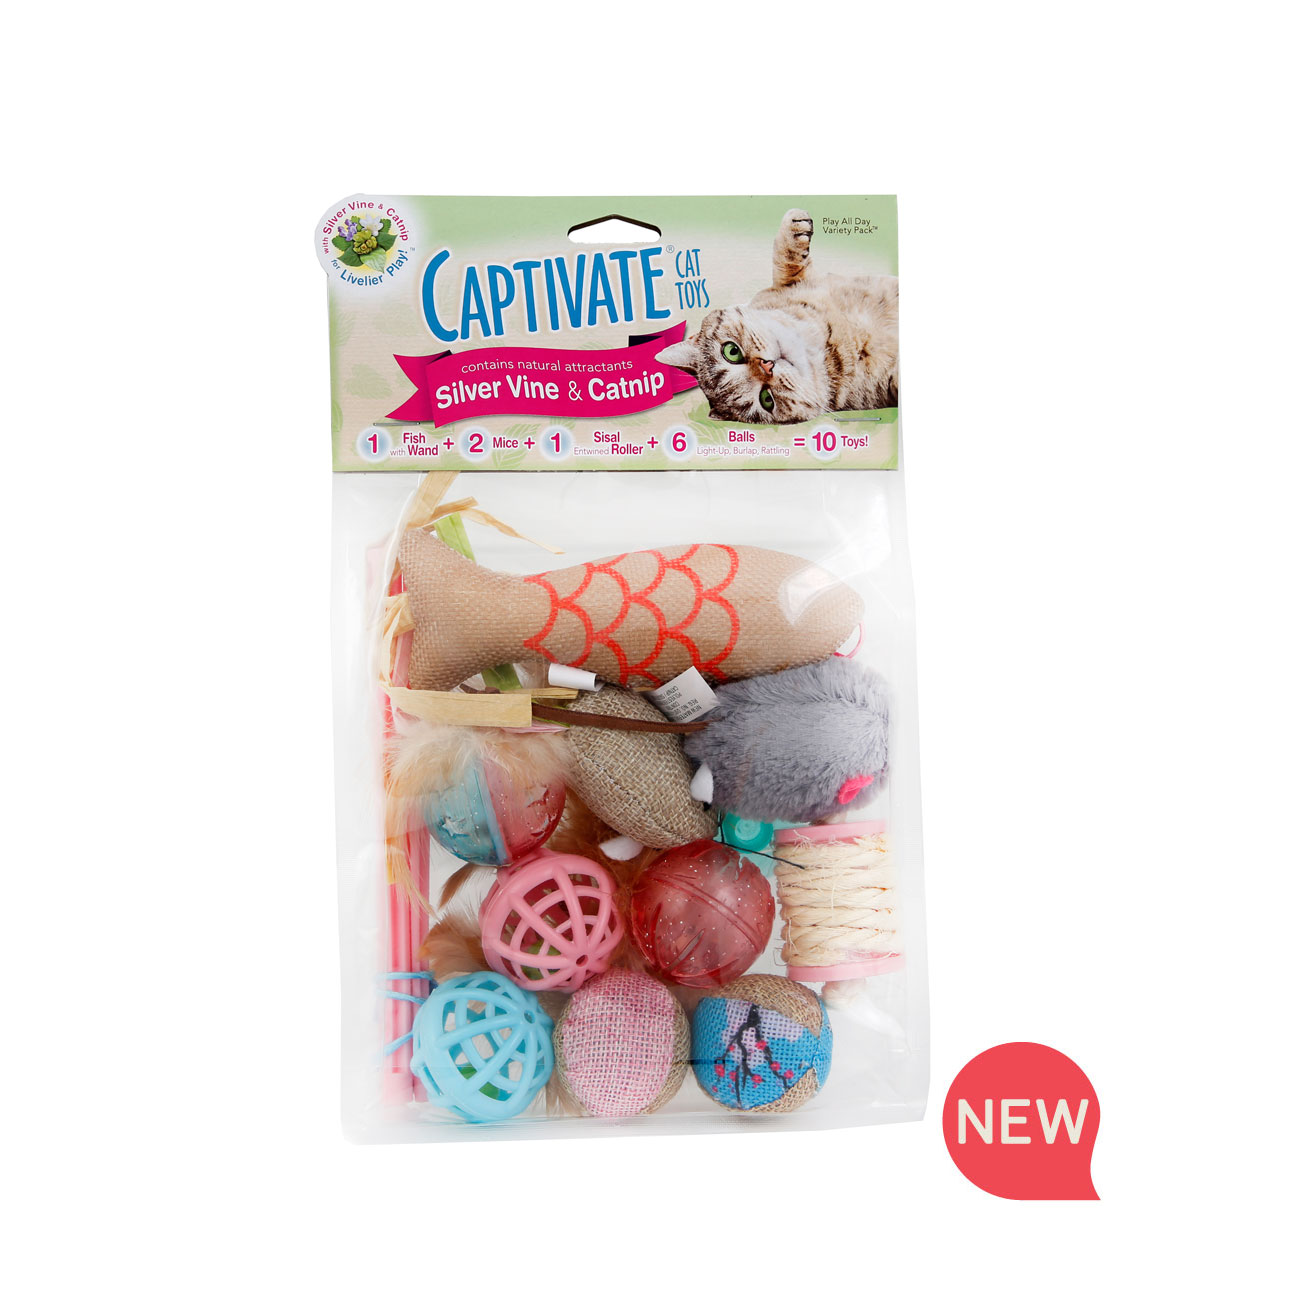 New! Hartz captivate cat toy with silver vine and catnip. Variety pack. Front of package. Hartz SKU#3270011251